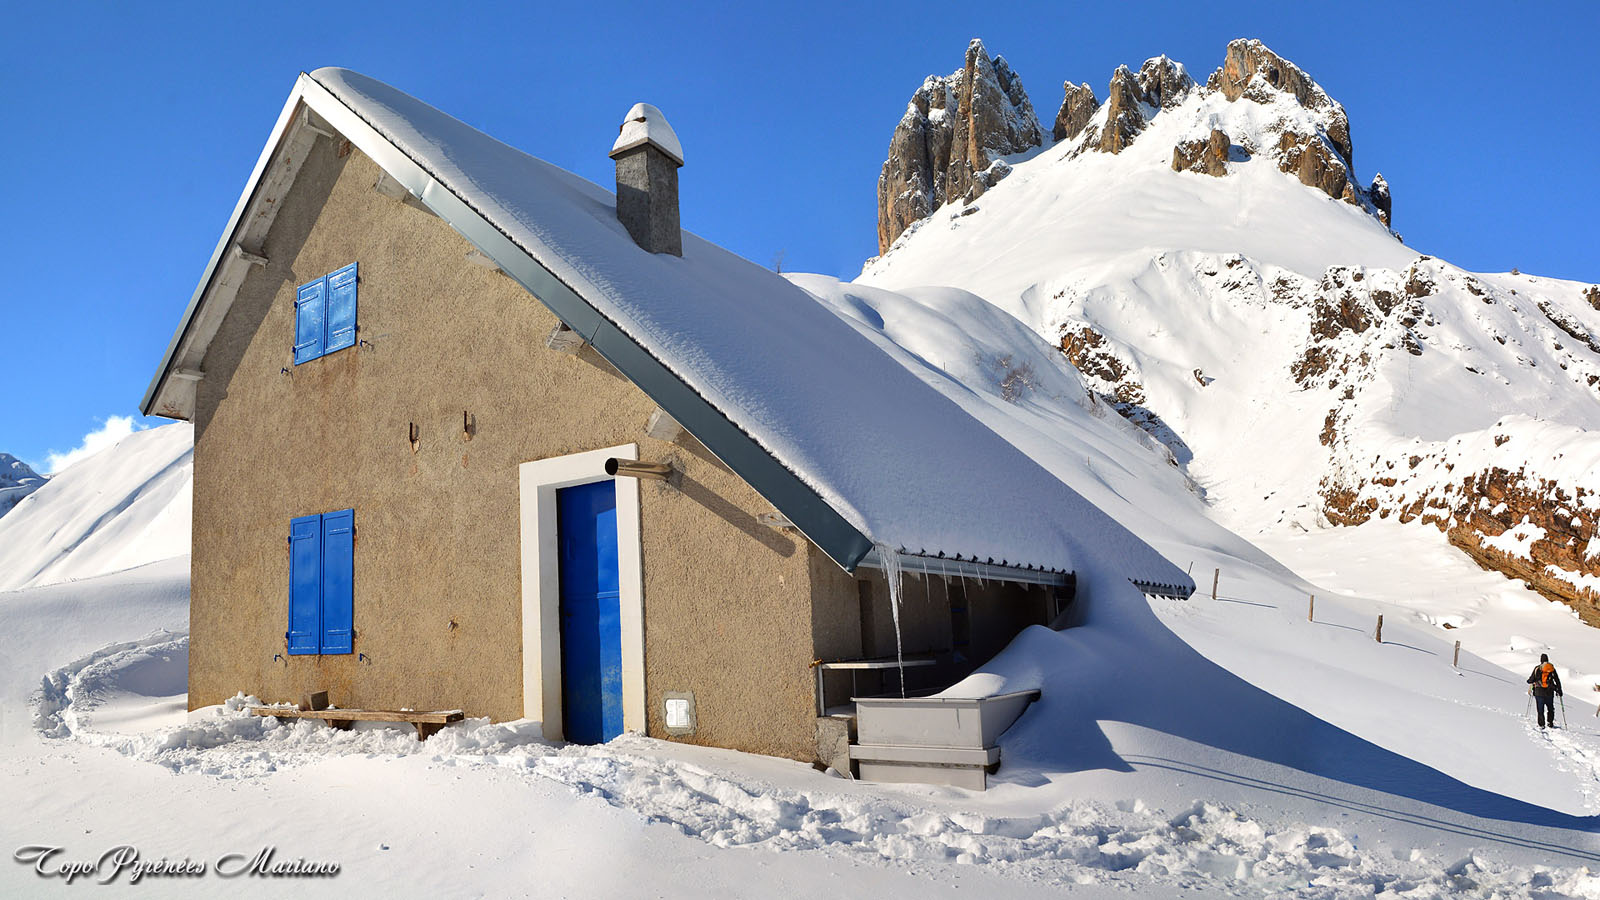 Article-Vallee-d-Ossau-hiver_074